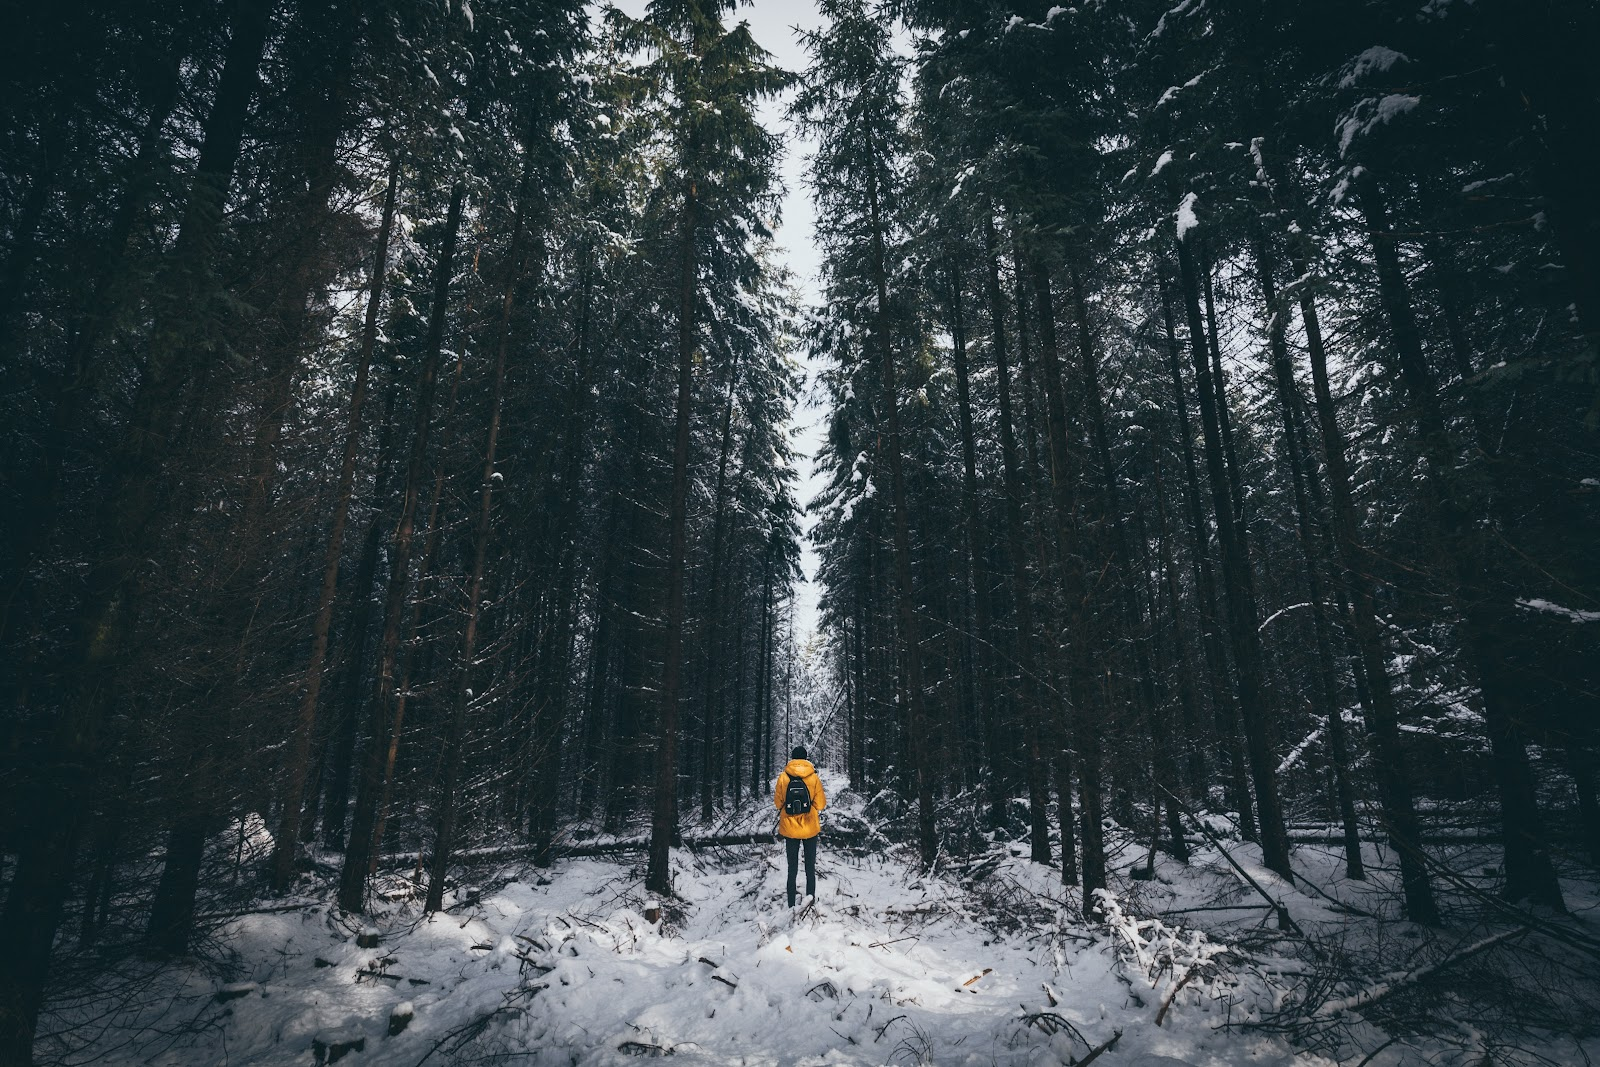 a person in the snowy woods